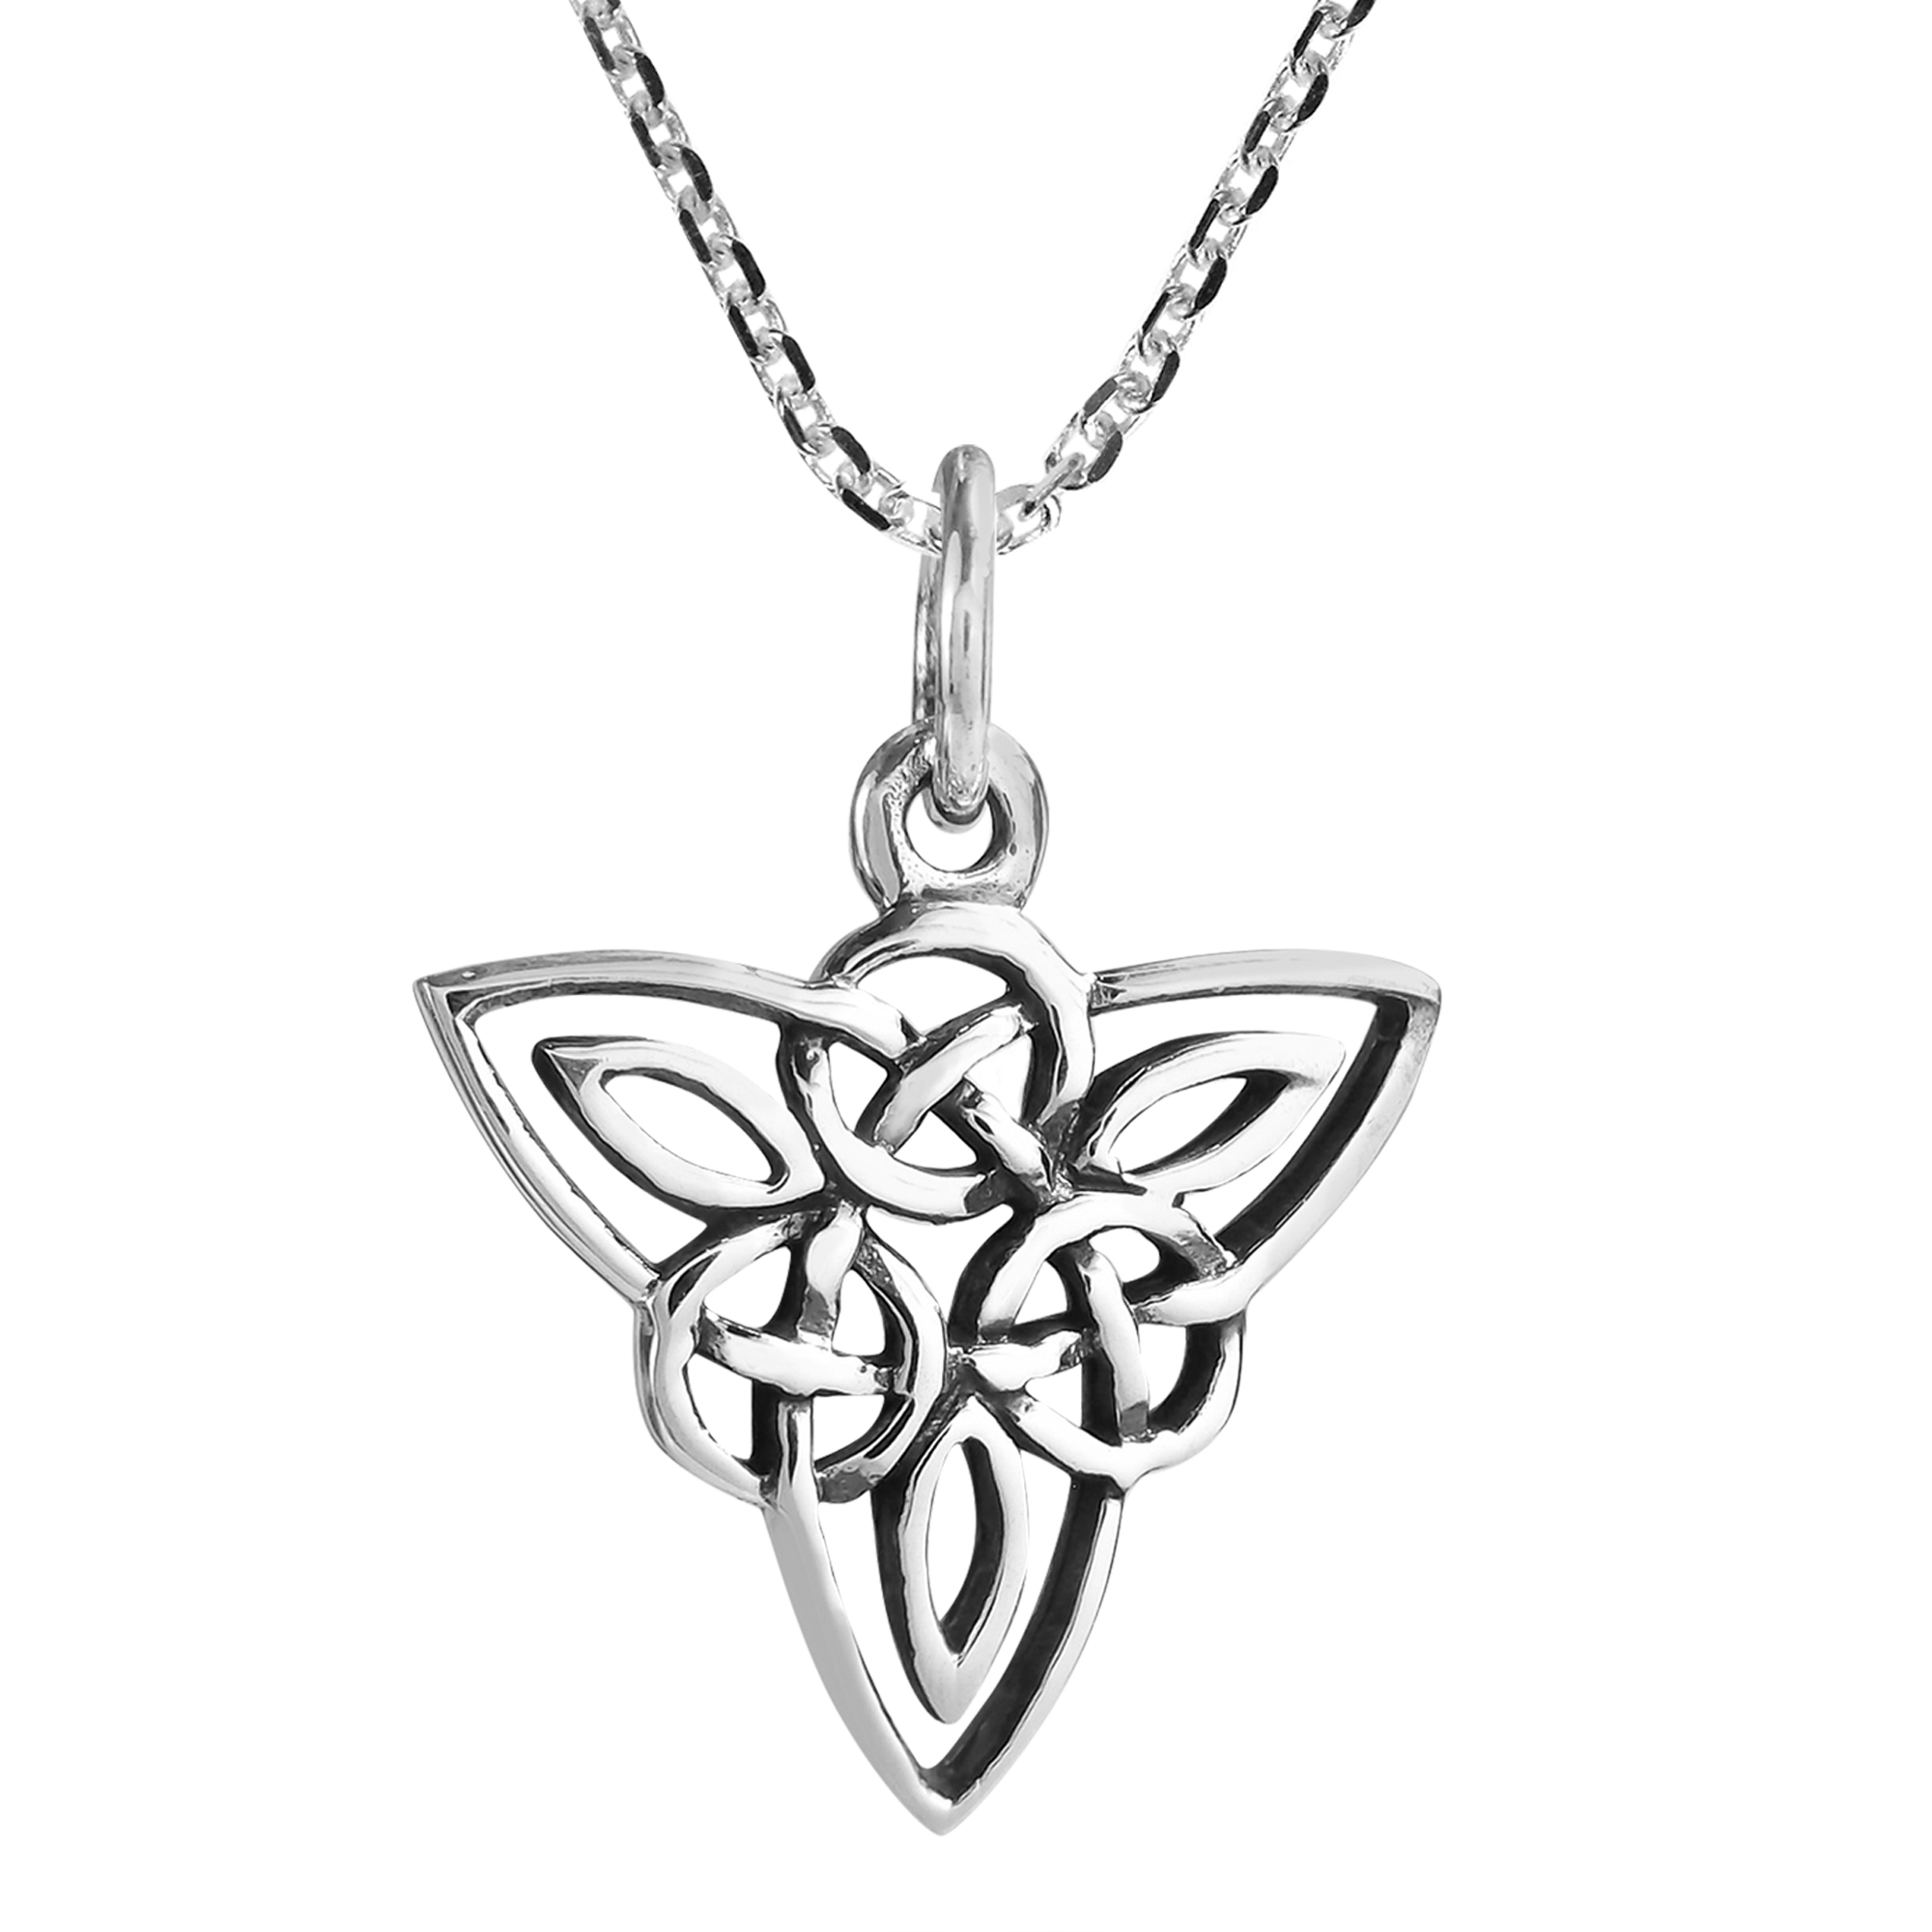 Celtic triquetra knot sterling silver triangle necklace aeravida local aeravida artisan kung from thailand handcrafted this captivating sterling silver celtic triquetra knot necklace this knot symbolizes the celtic biocorpaavc